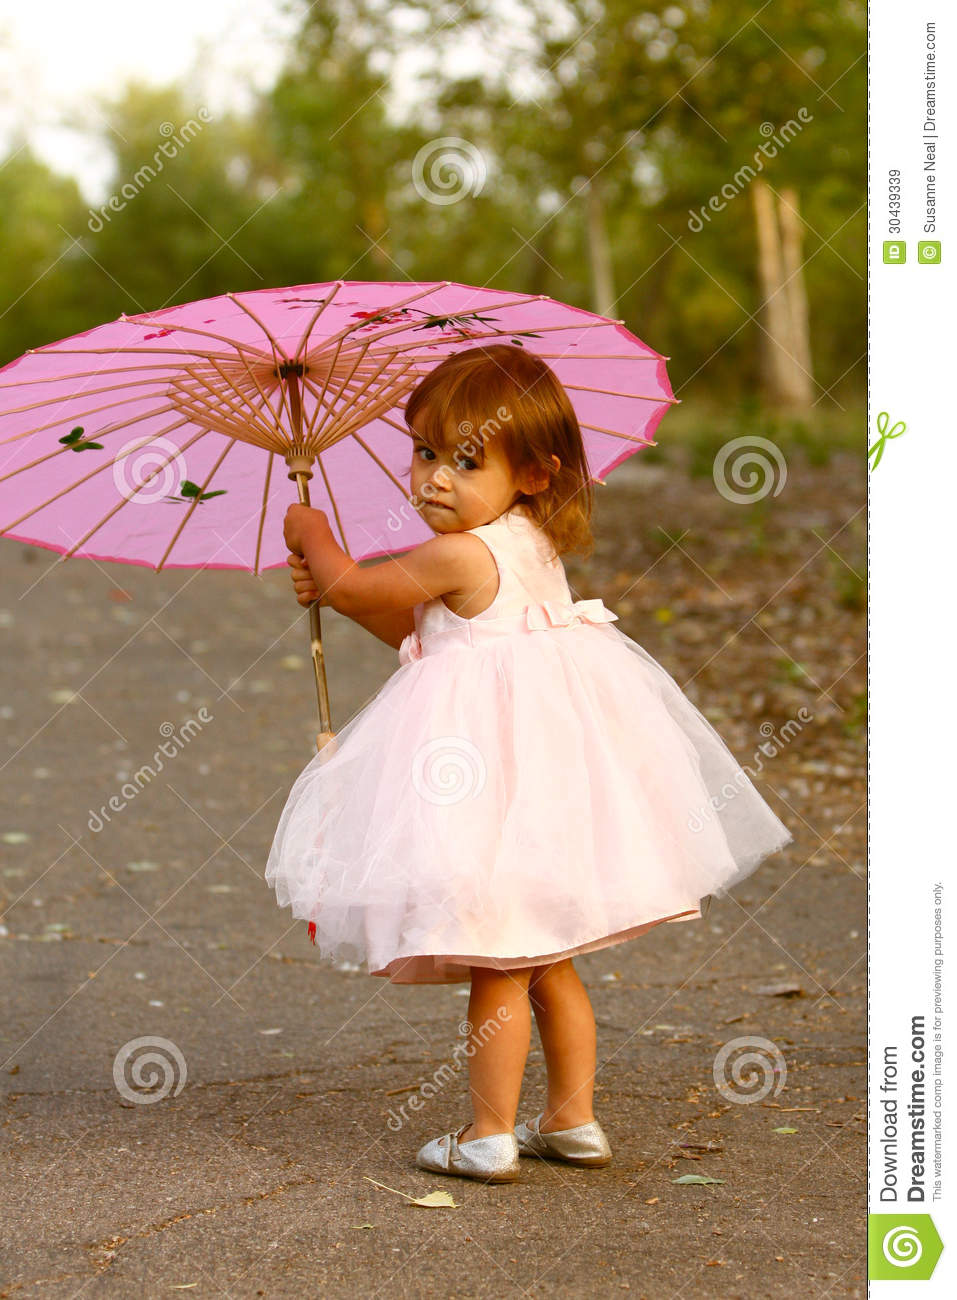 Dressy two-year-old girl carrying pink parasol